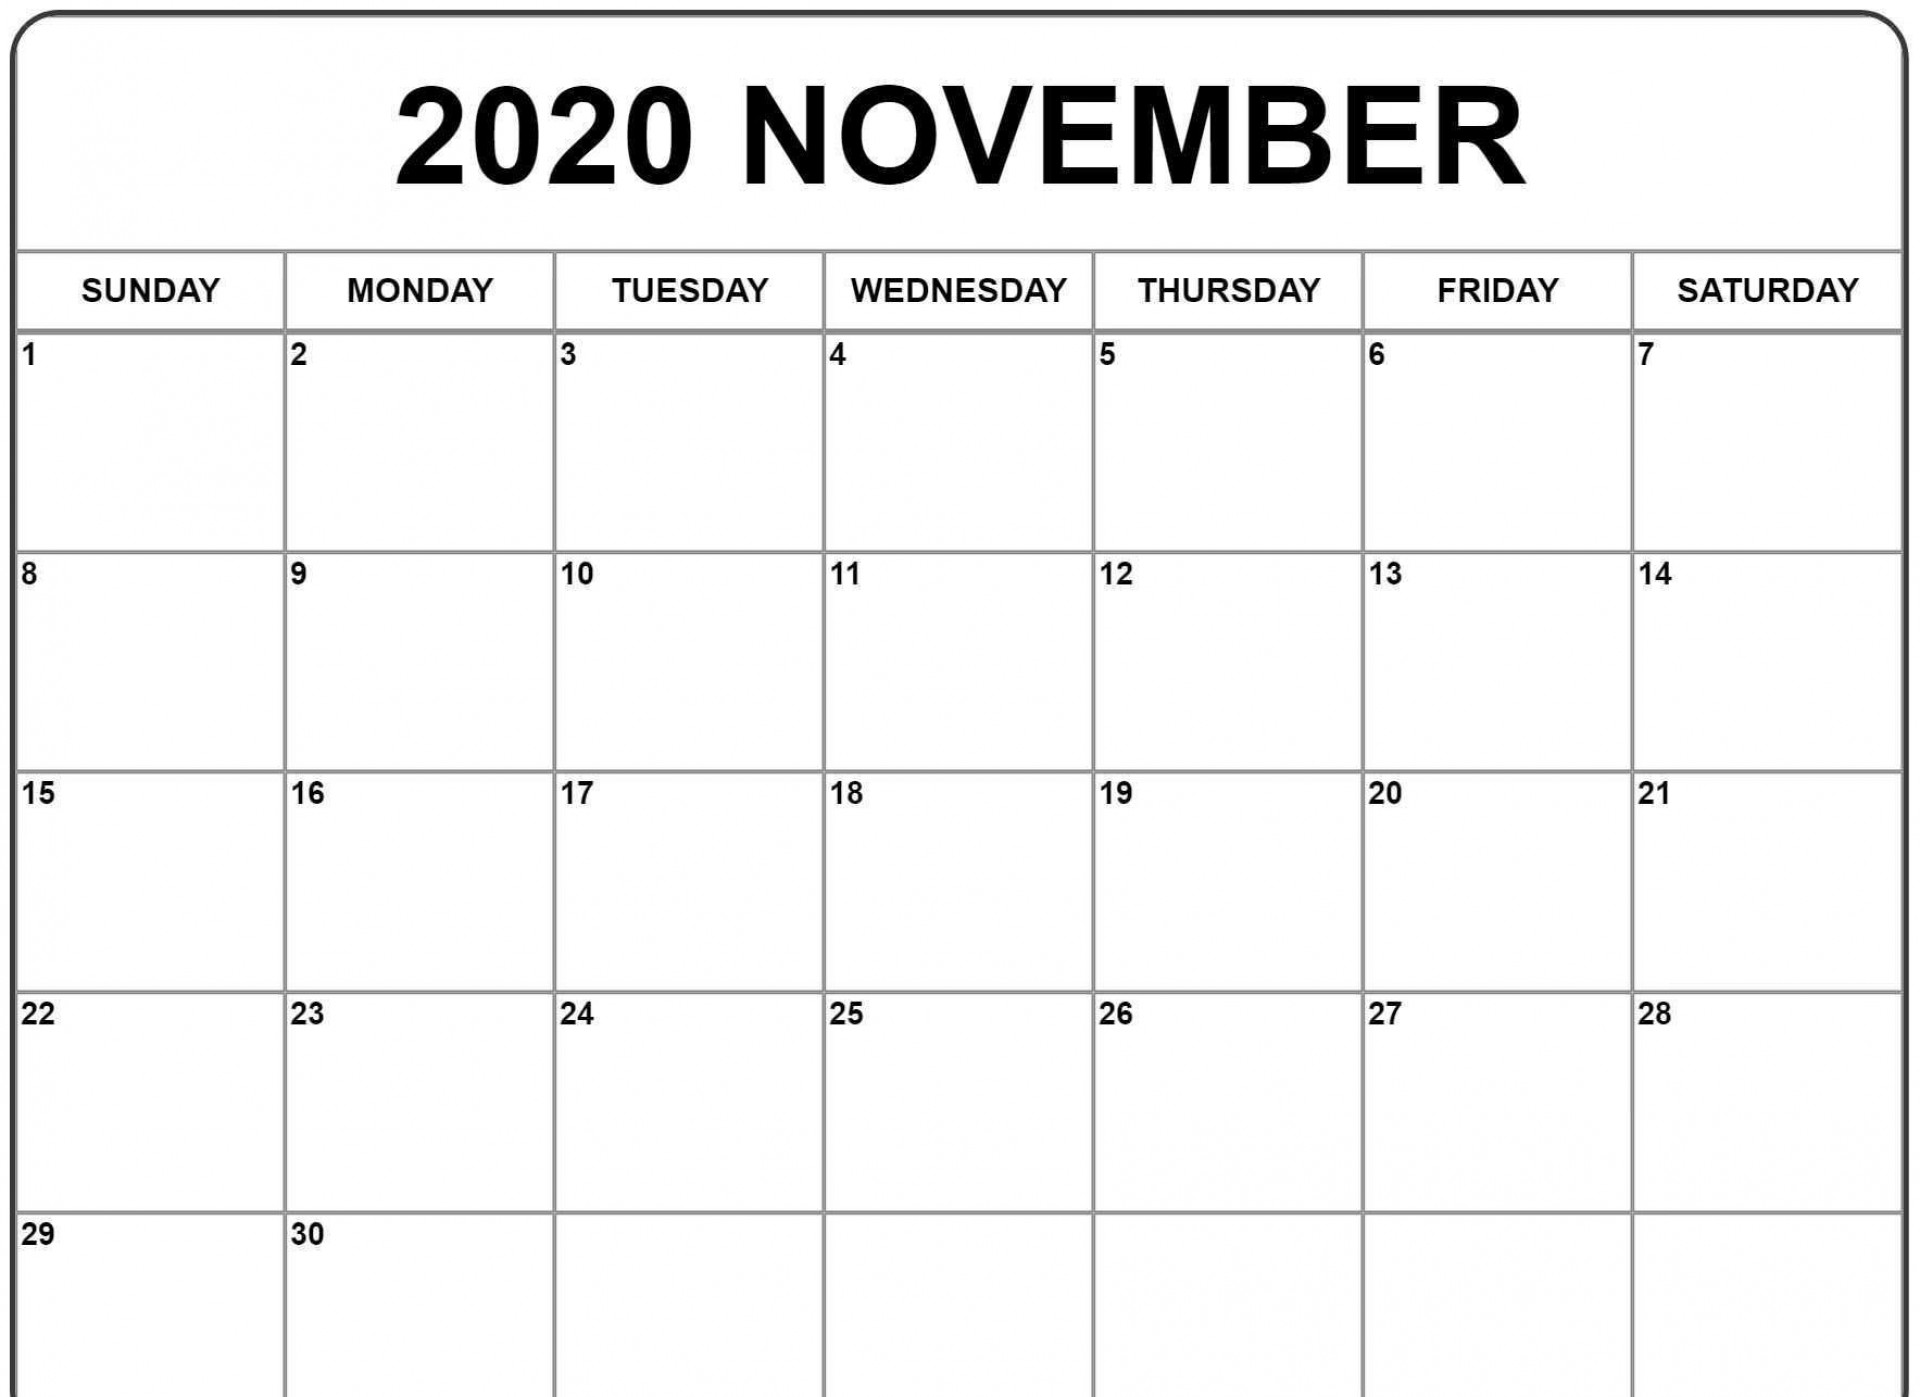 000 Archaicawful Printable Calendar Template November 2020 Highest Quality  Free1920